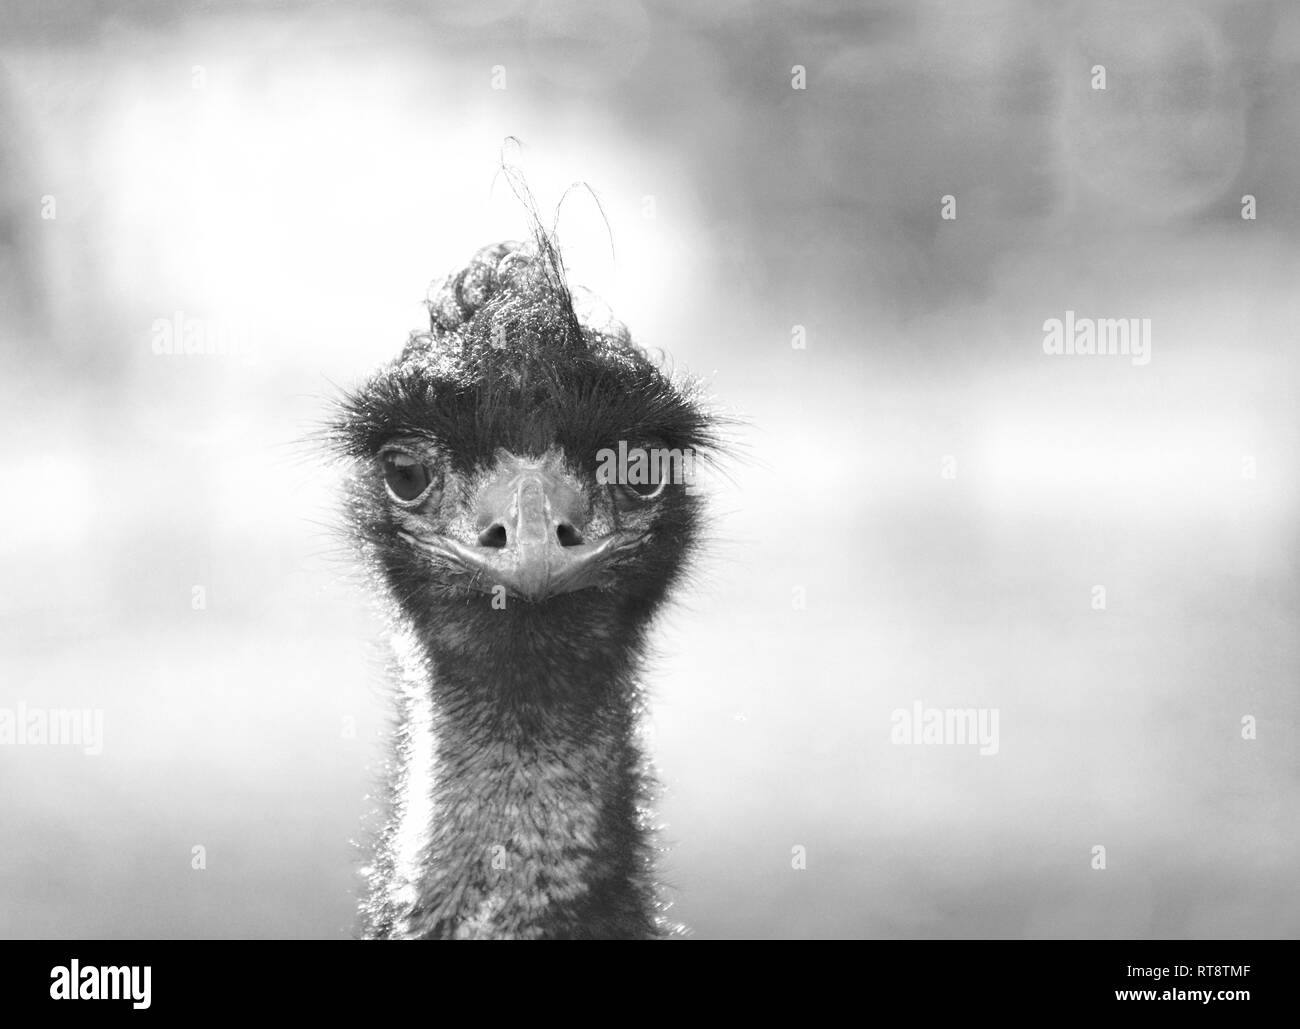 Emu Portrait (close up head and face with direct eye contact) - Stock Image